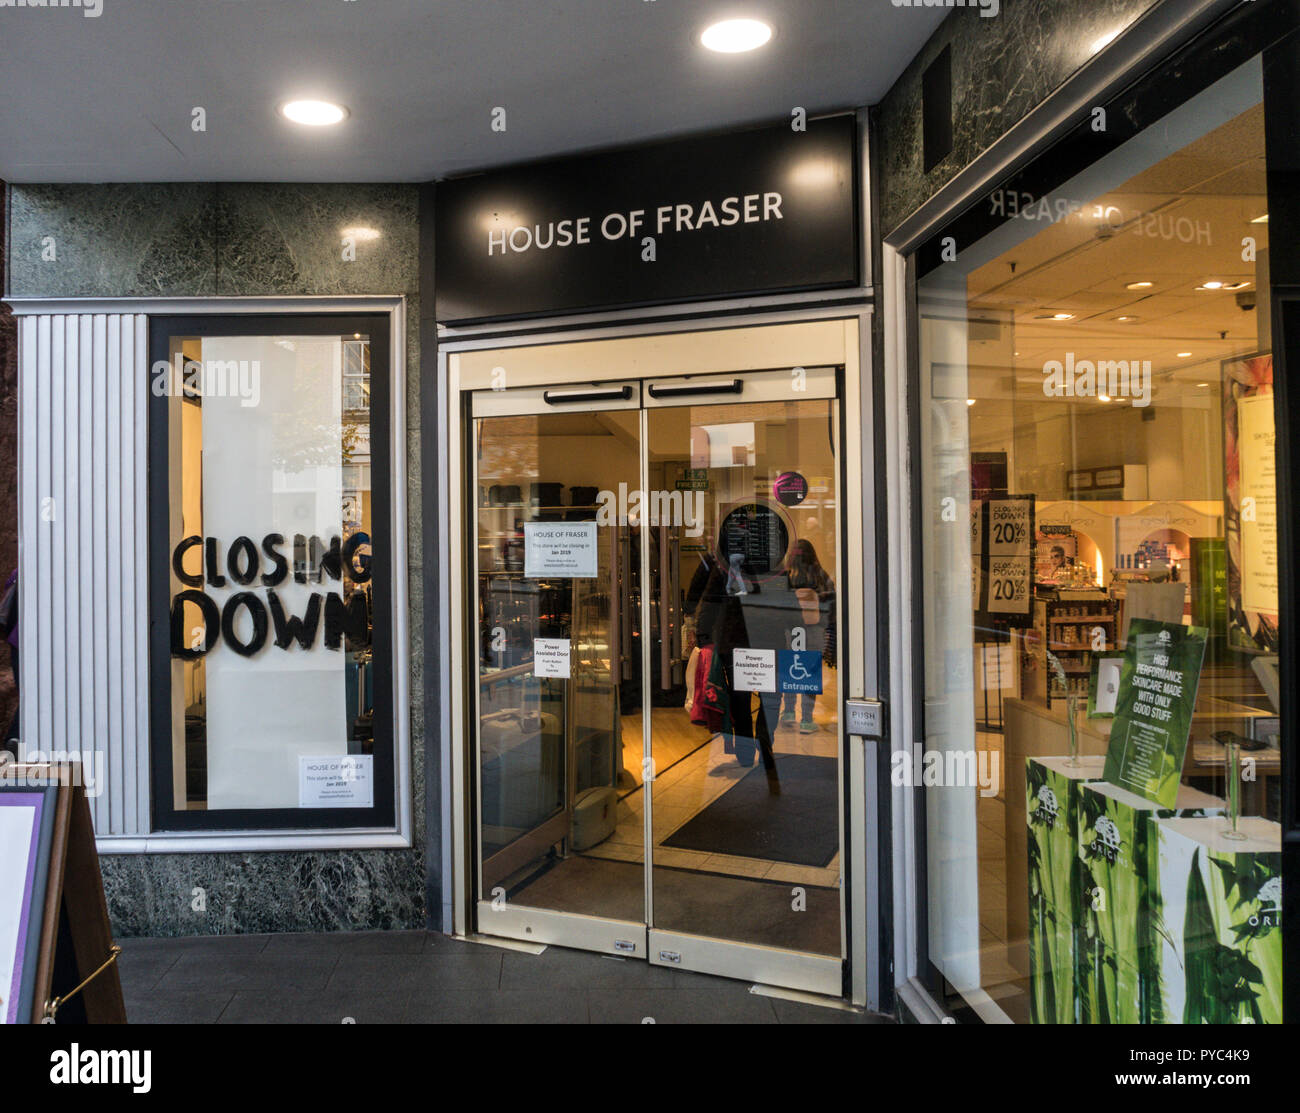 House of Fraser department store Exeter, due to close in January 2019. - Stock Image